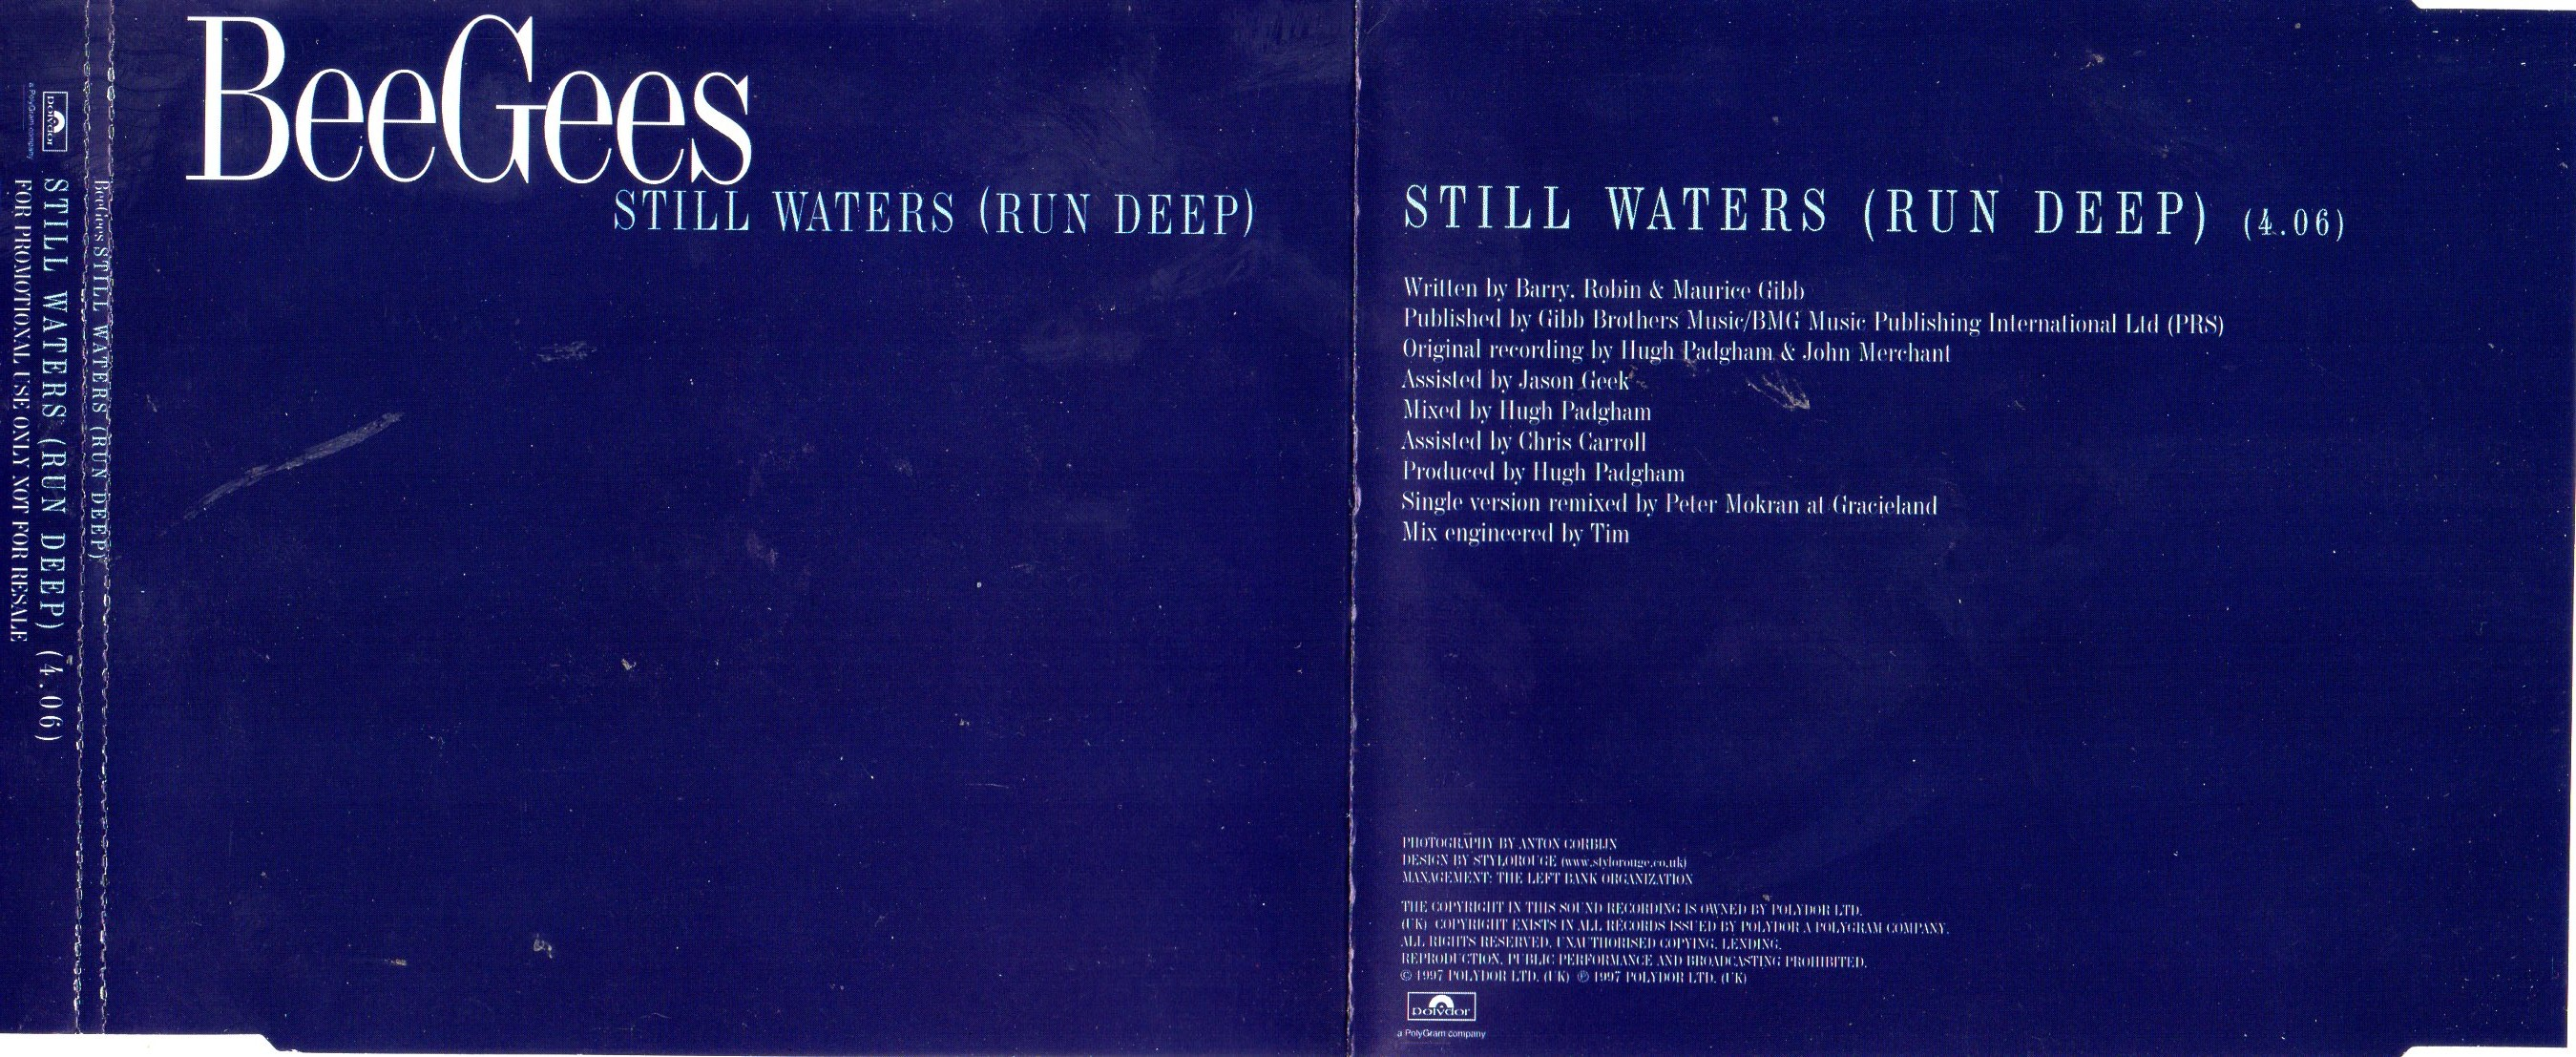 BEE GEES - Still Waters Run Deep 4 Tracks Jewel Case